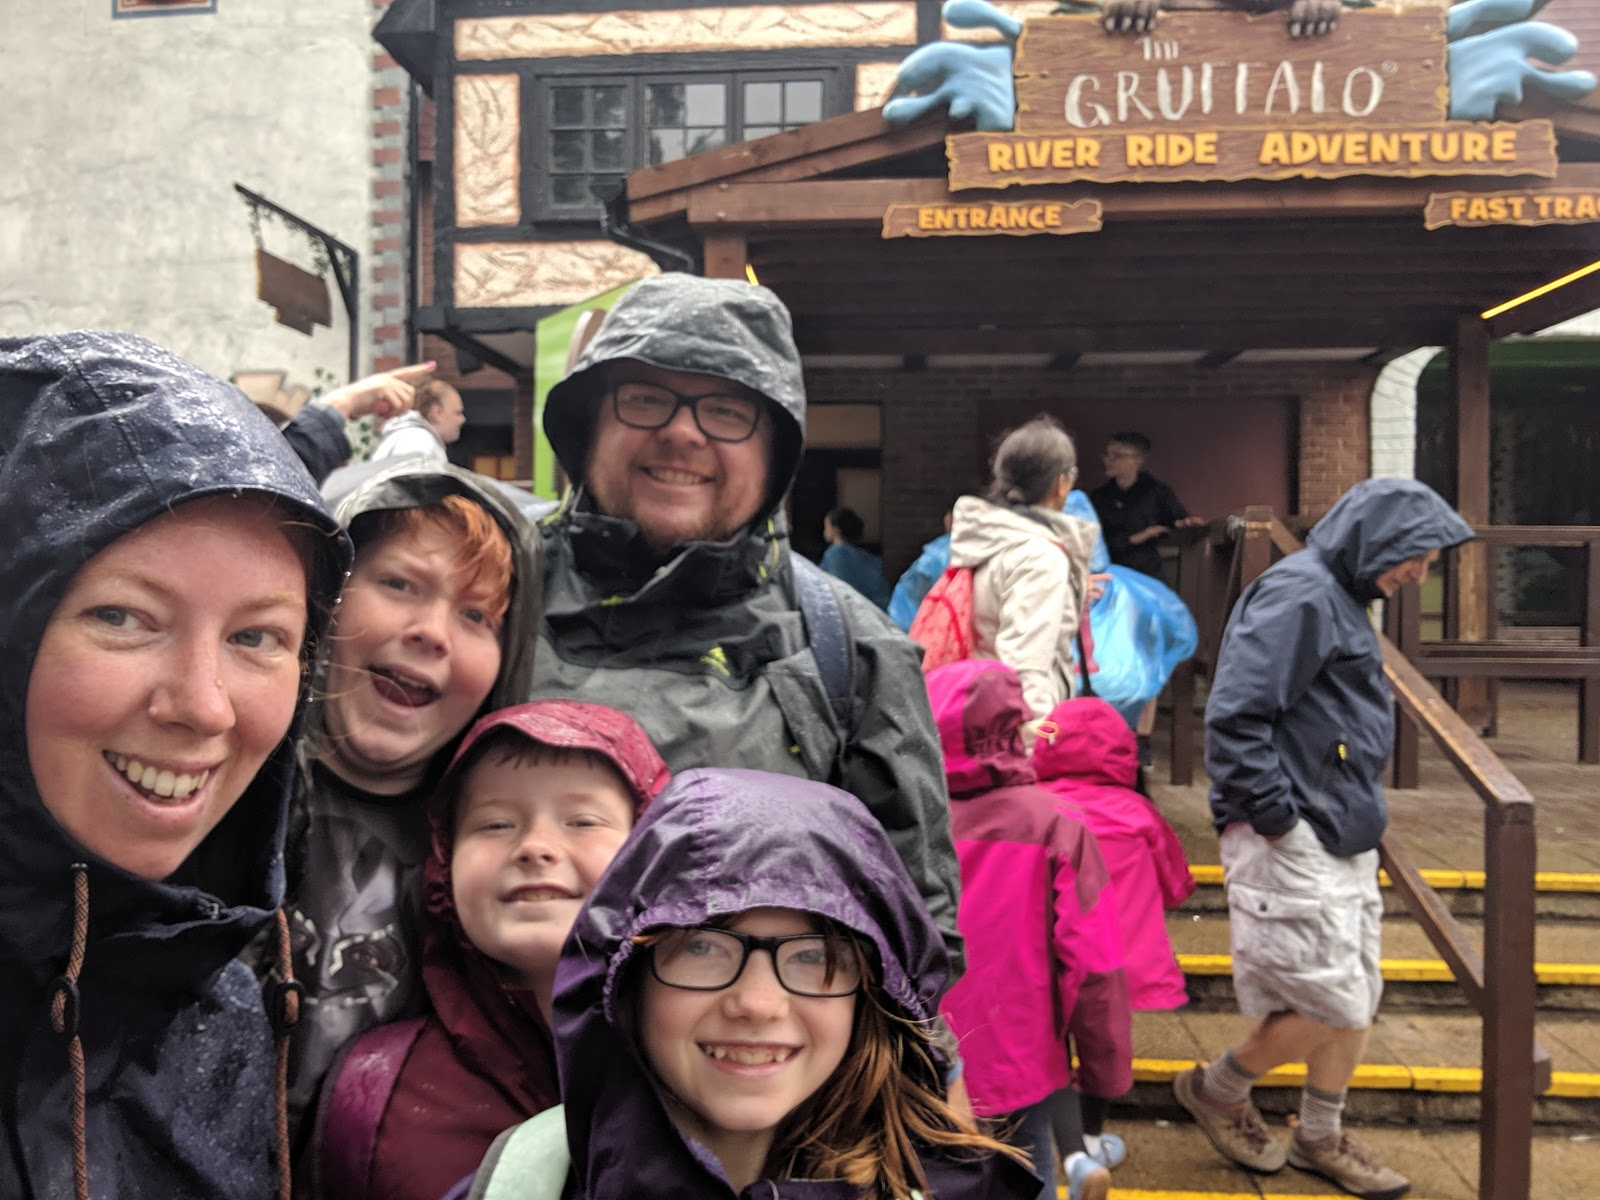 Exploring the Southern Merlin Theme Parks with Tweens  - gruffalo water ride entrance